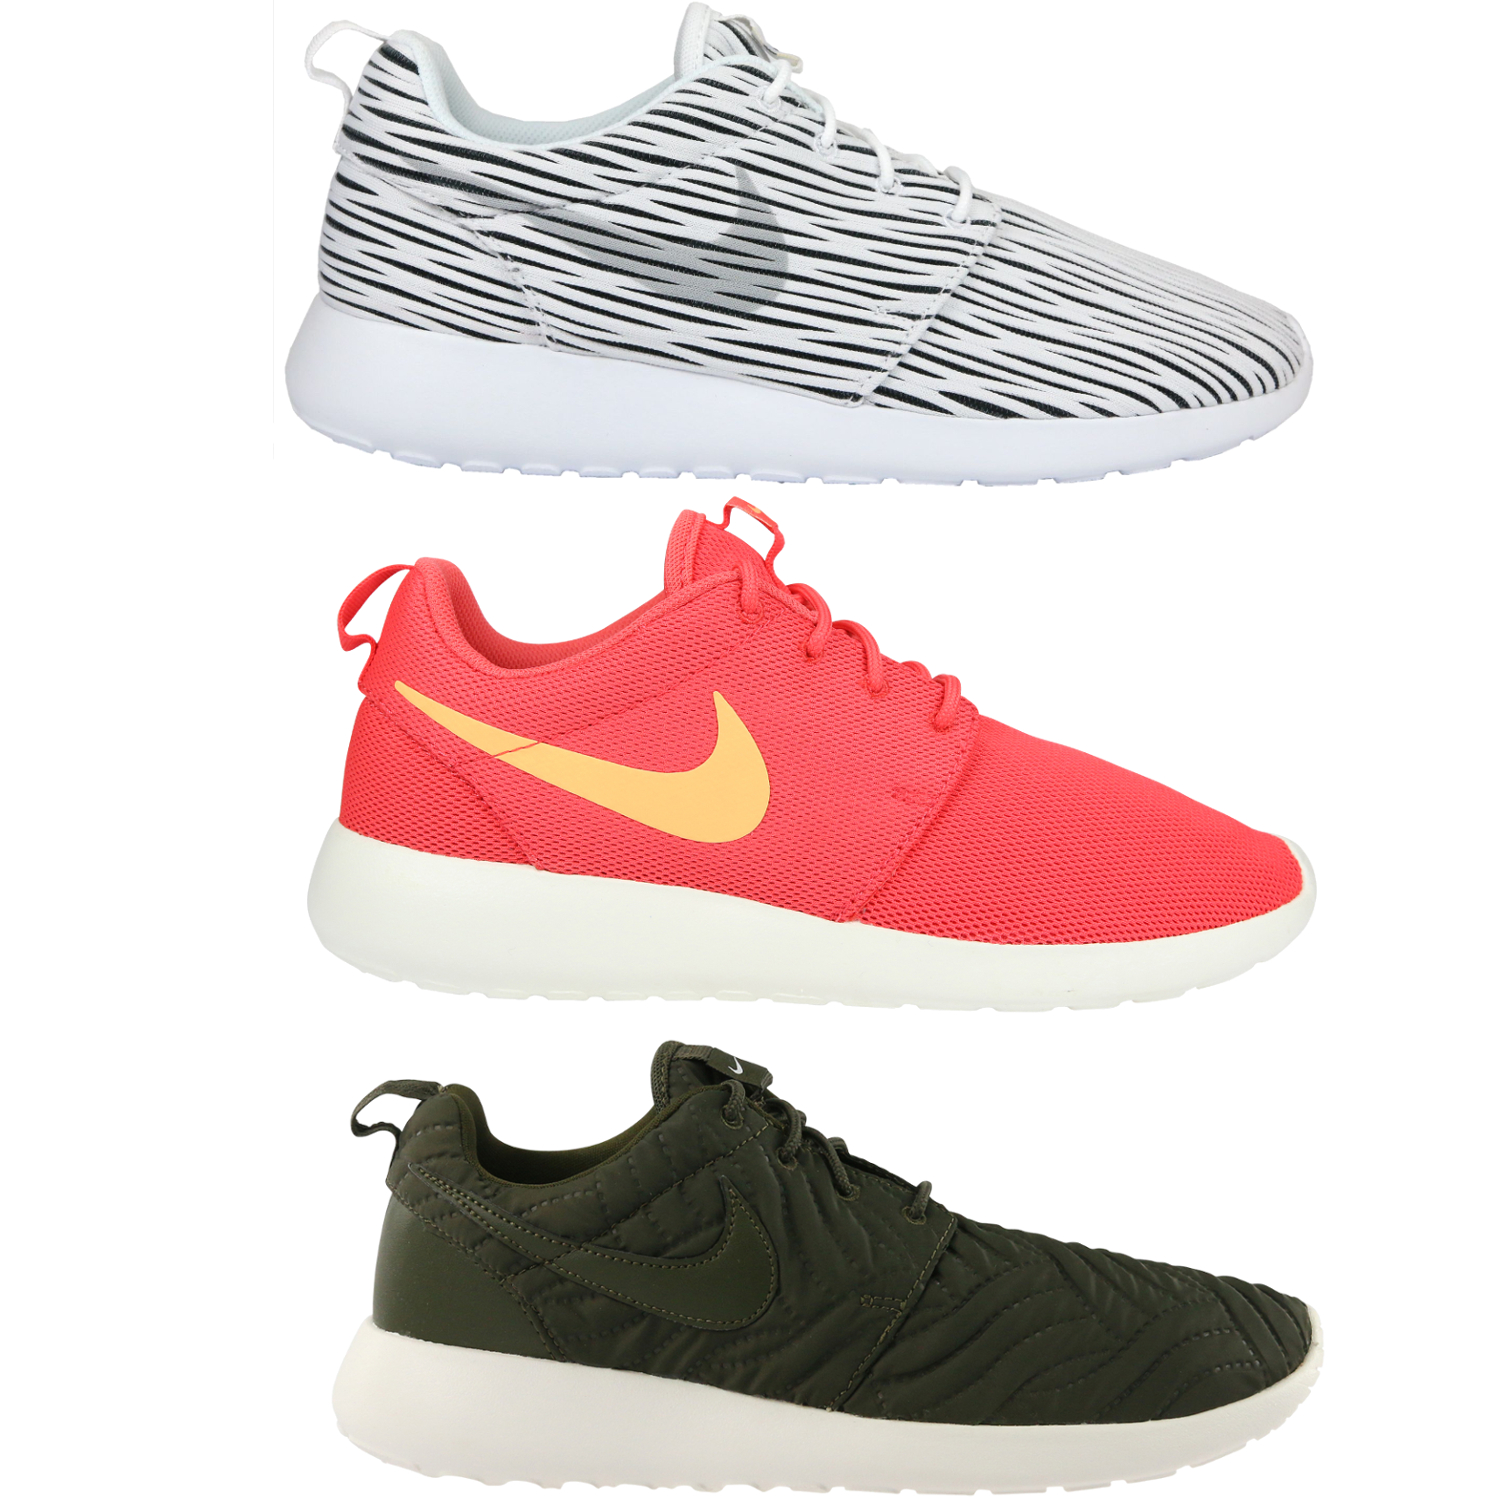 nike roshe one schuhe sneaker turnschuhe rosherun damen ebay. Black Bedroom Furniture Sets. Home Design Ideas